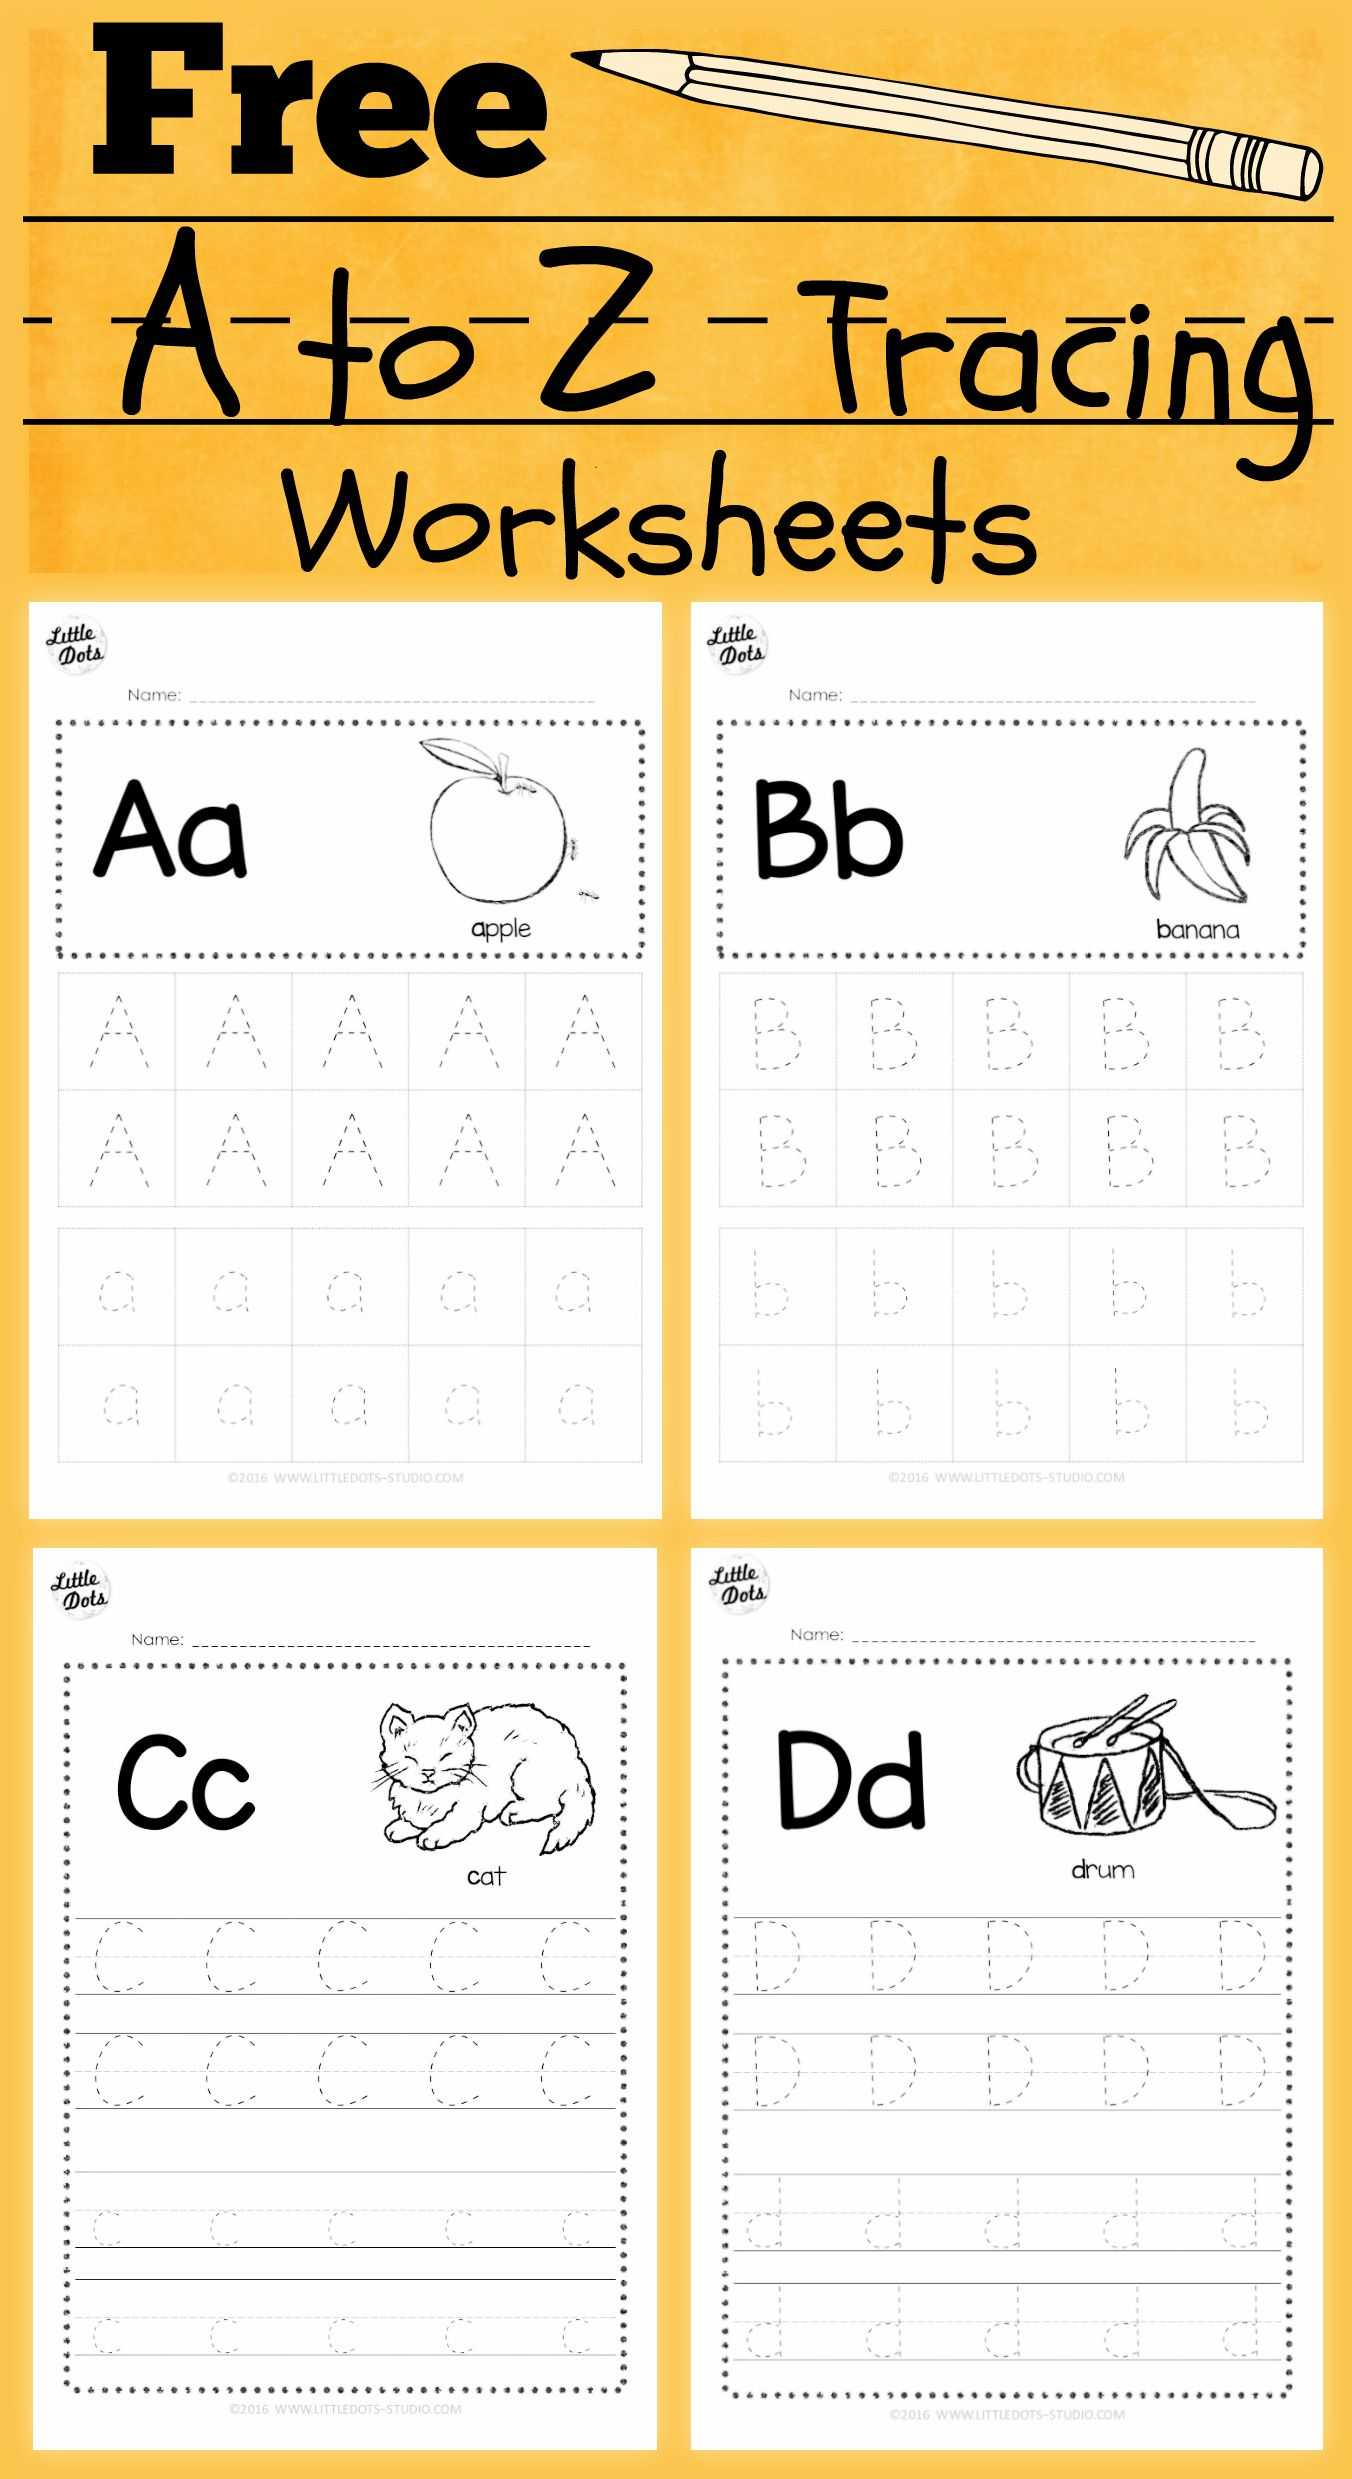 Preschool Name Tracing Worksheets Also Download Free Alphabet Tracing Worksheets for Letter A to Z Suitable